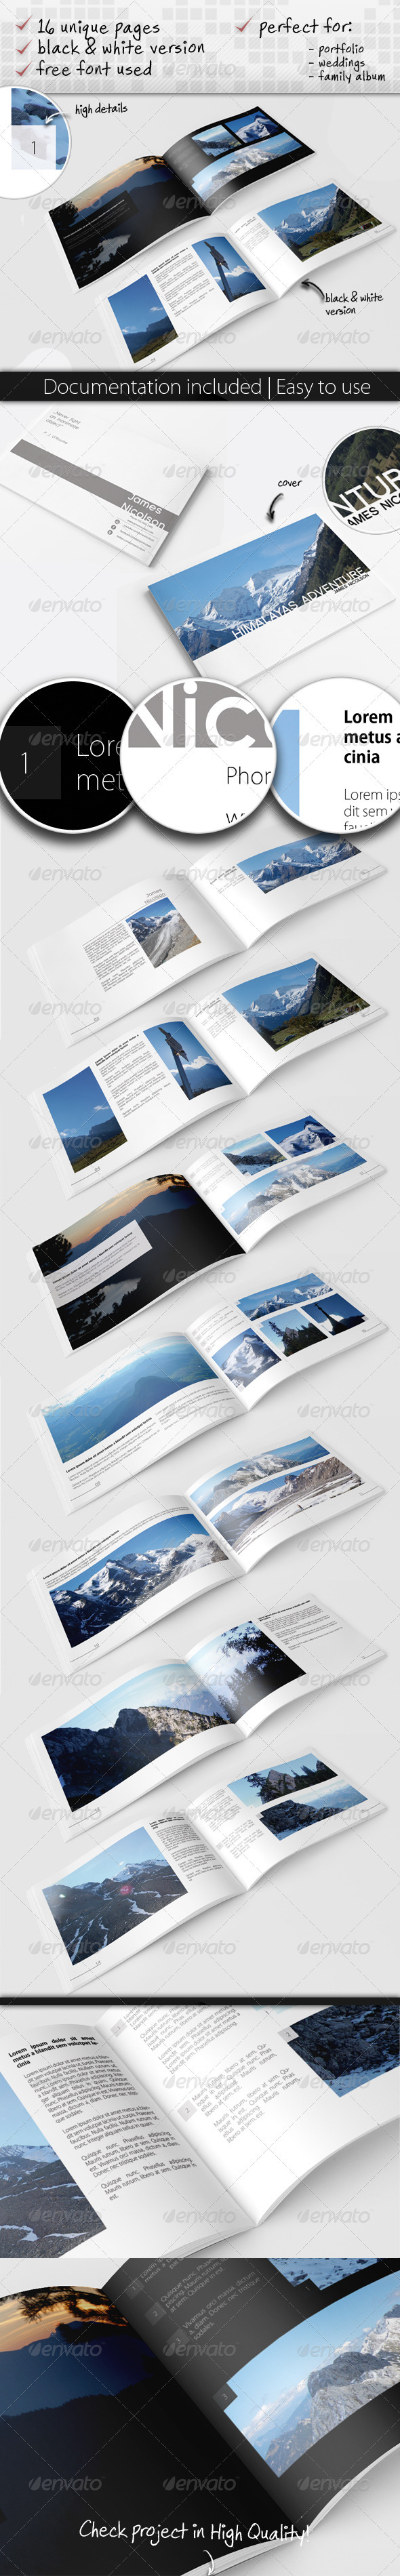 GraphicRiver Universal Album 3909205